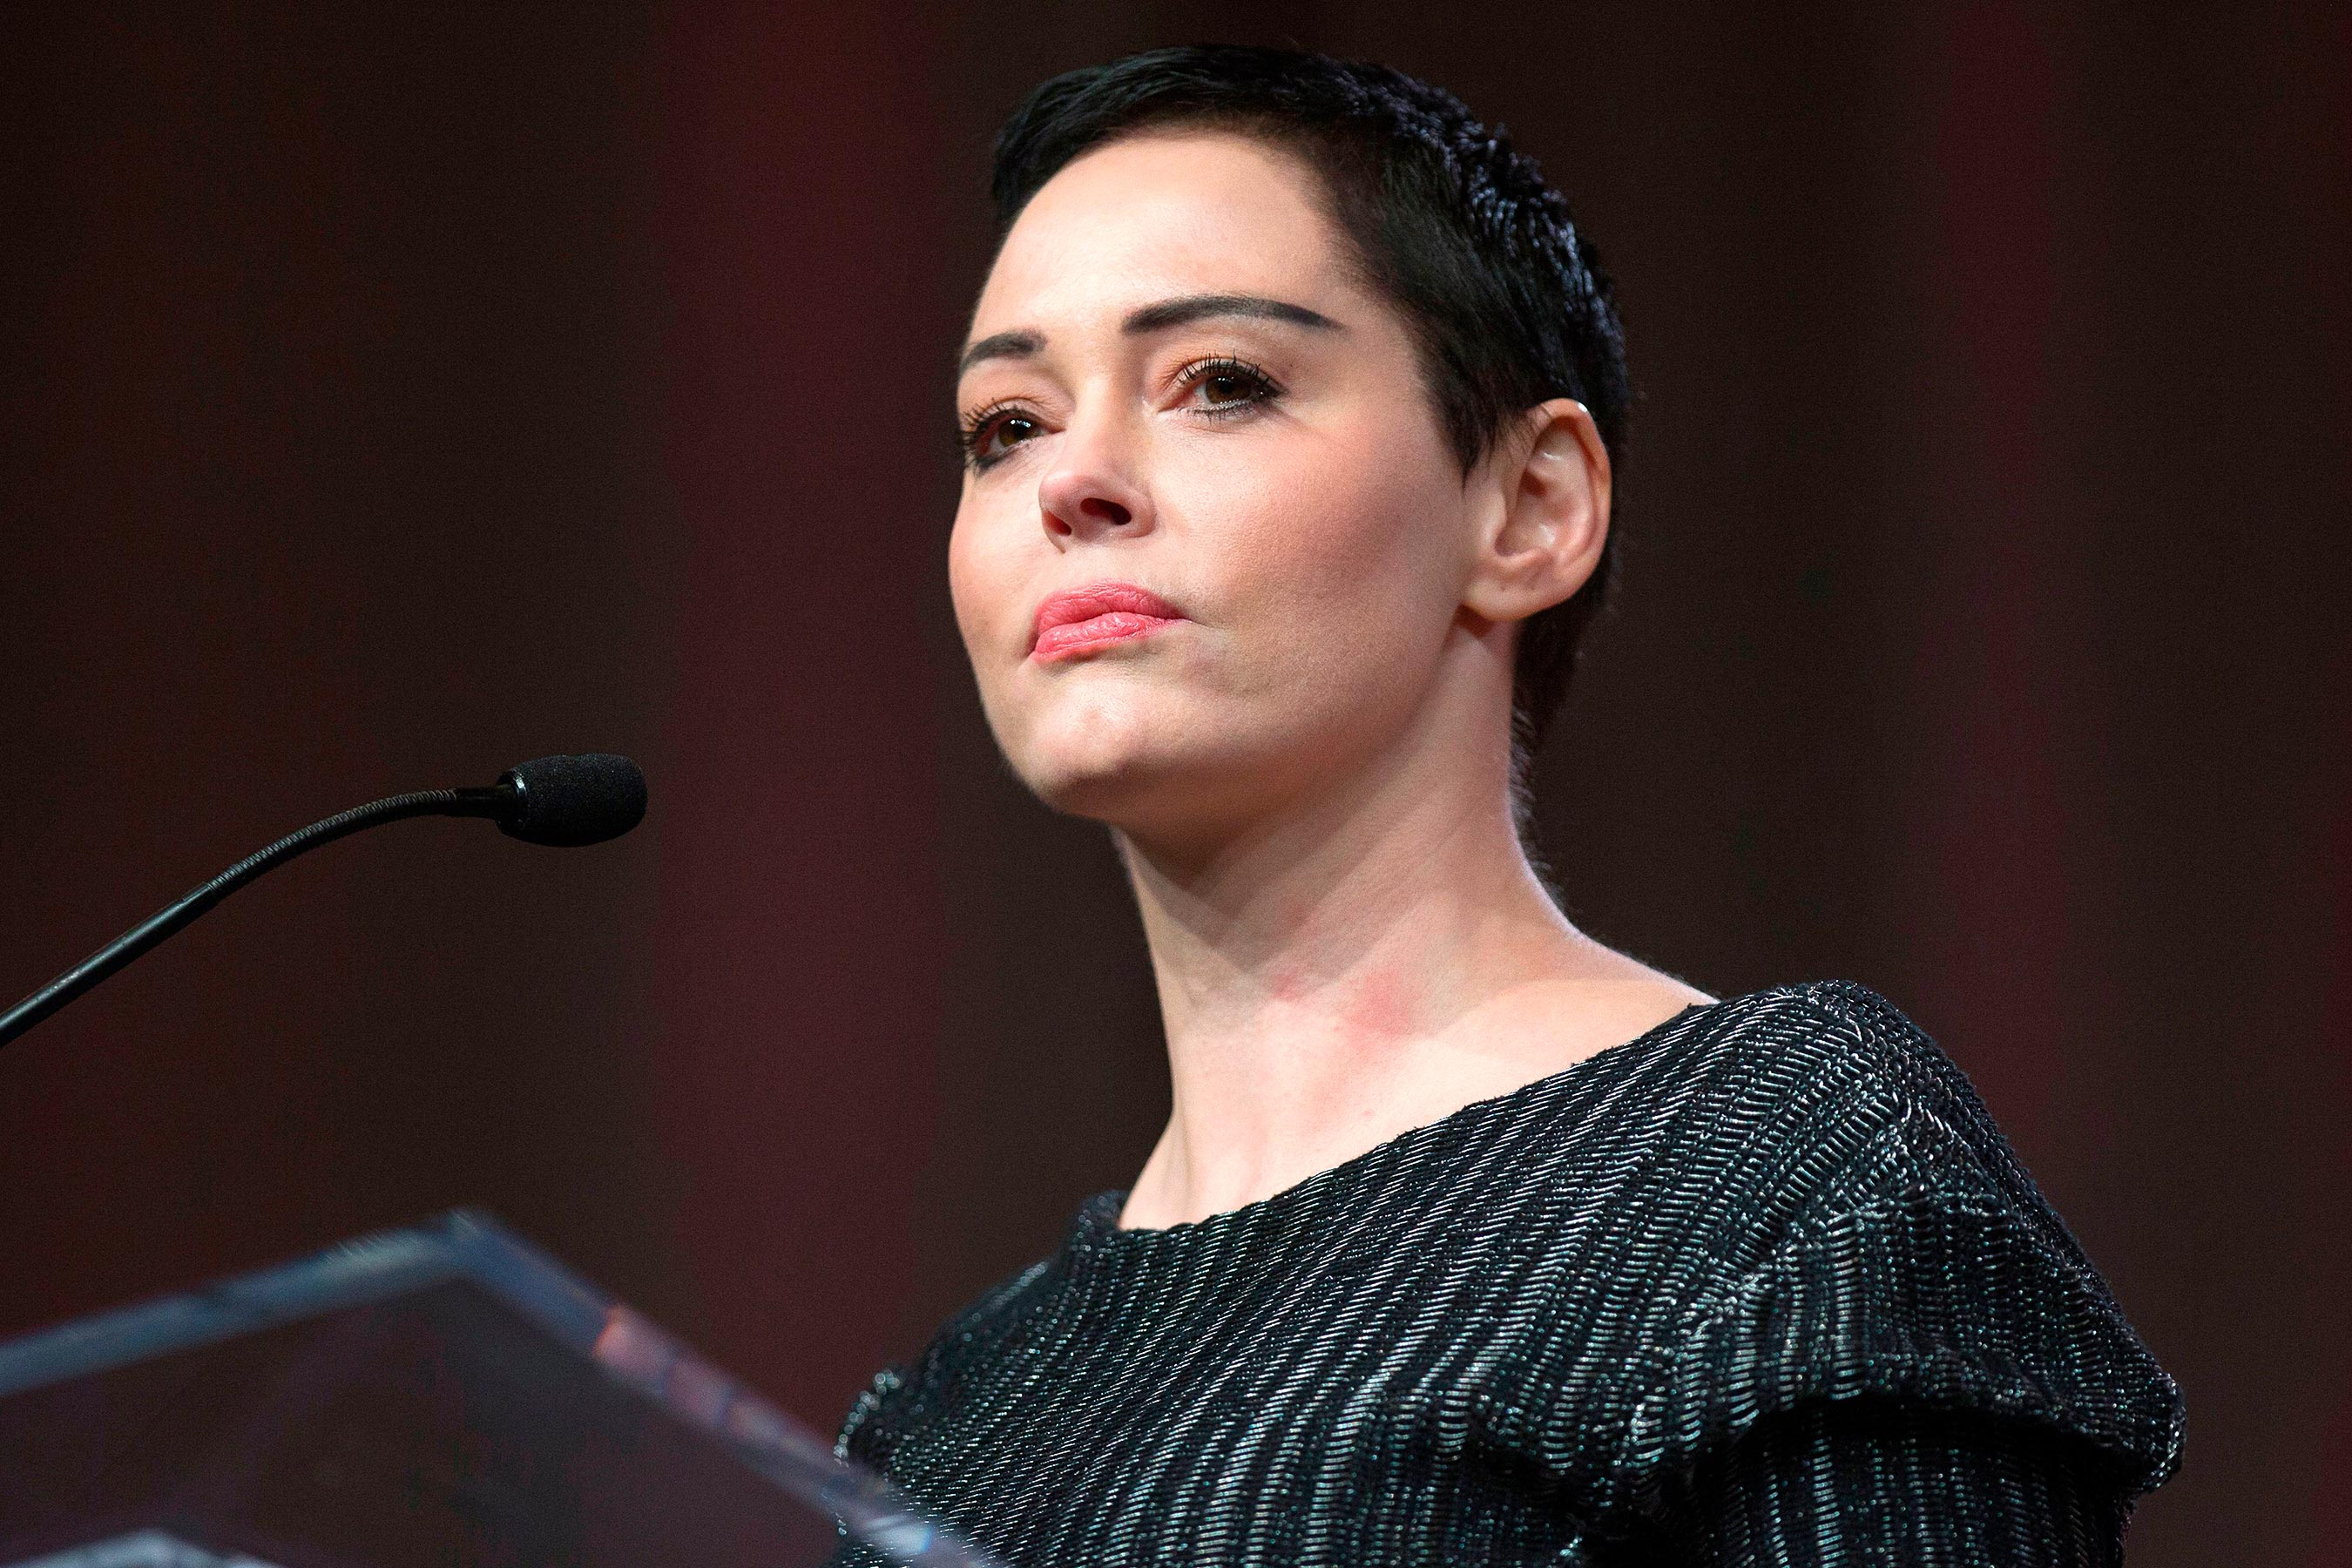 Golden Globes: Rose McGowan speaks out against stars wearing black